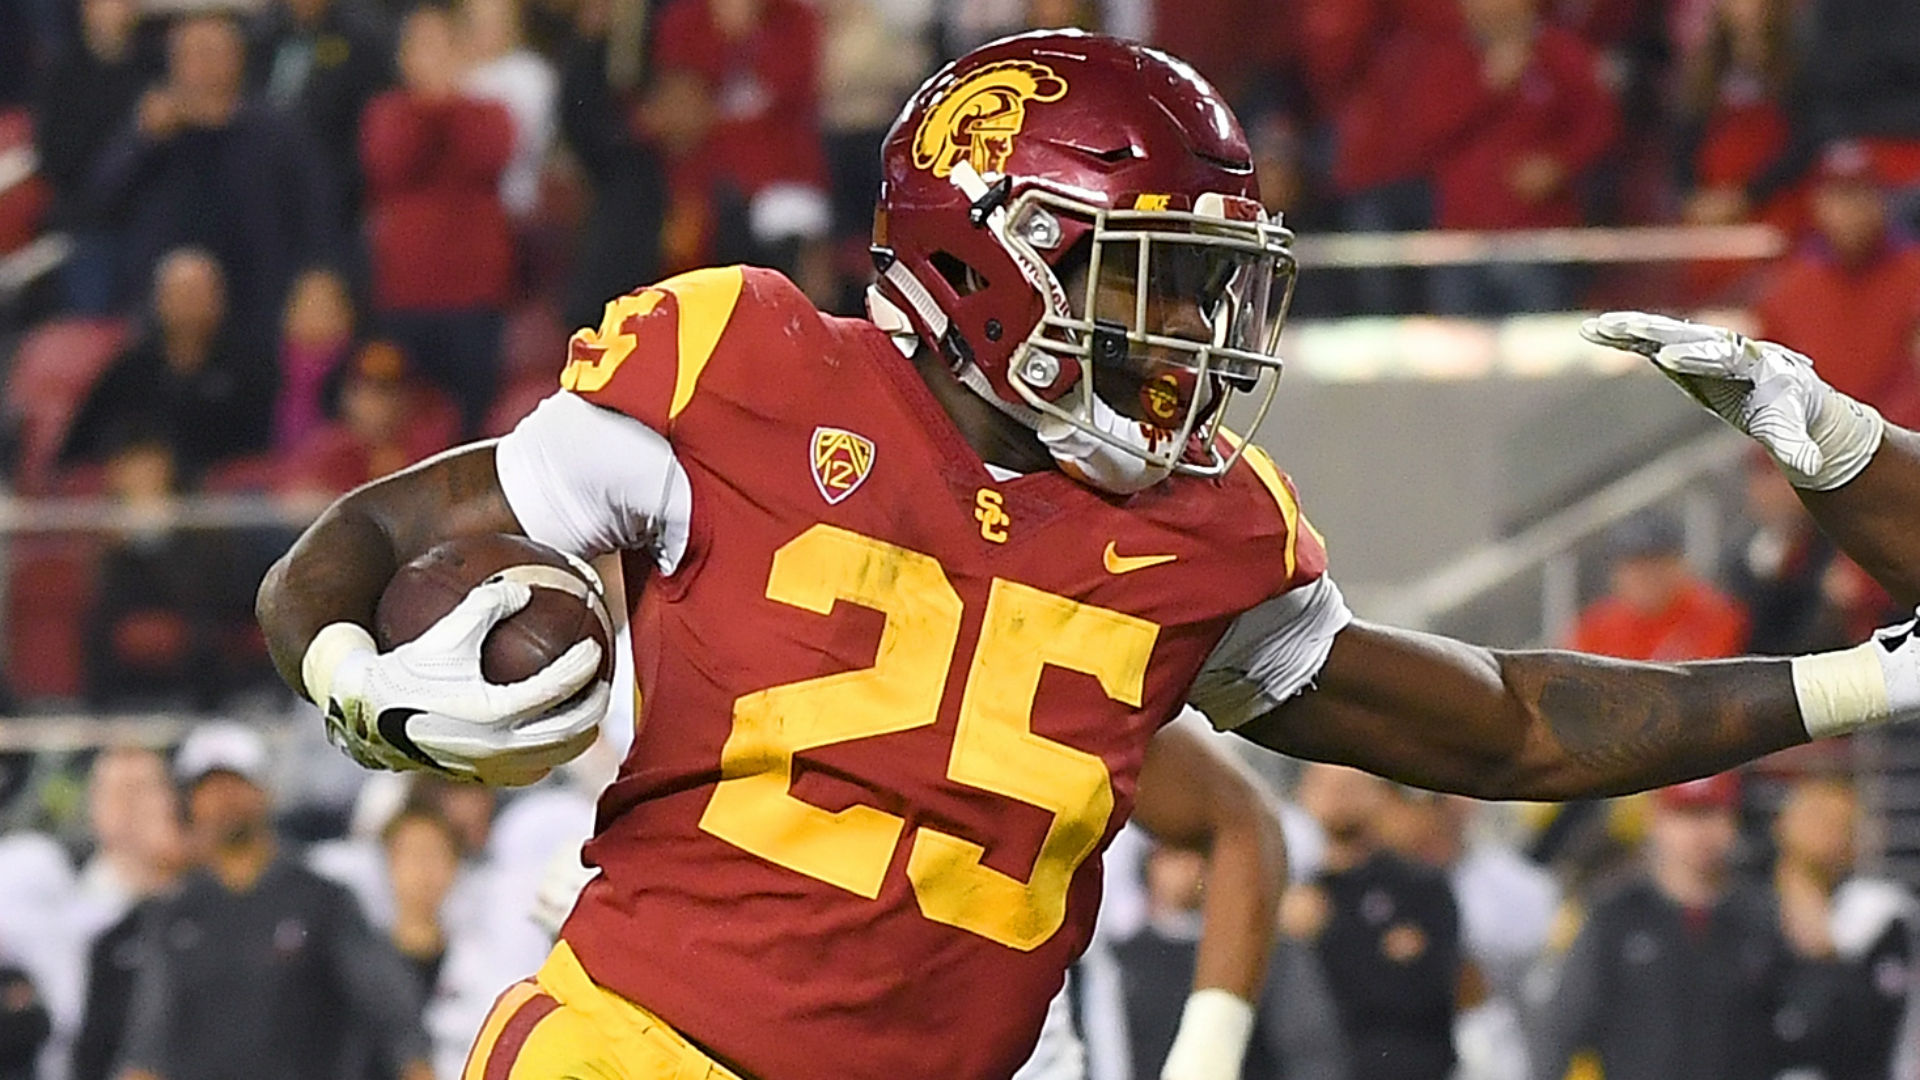 2018 NFL Draft Watch: Ronald Jones as ready to contribute as Sam Darnold